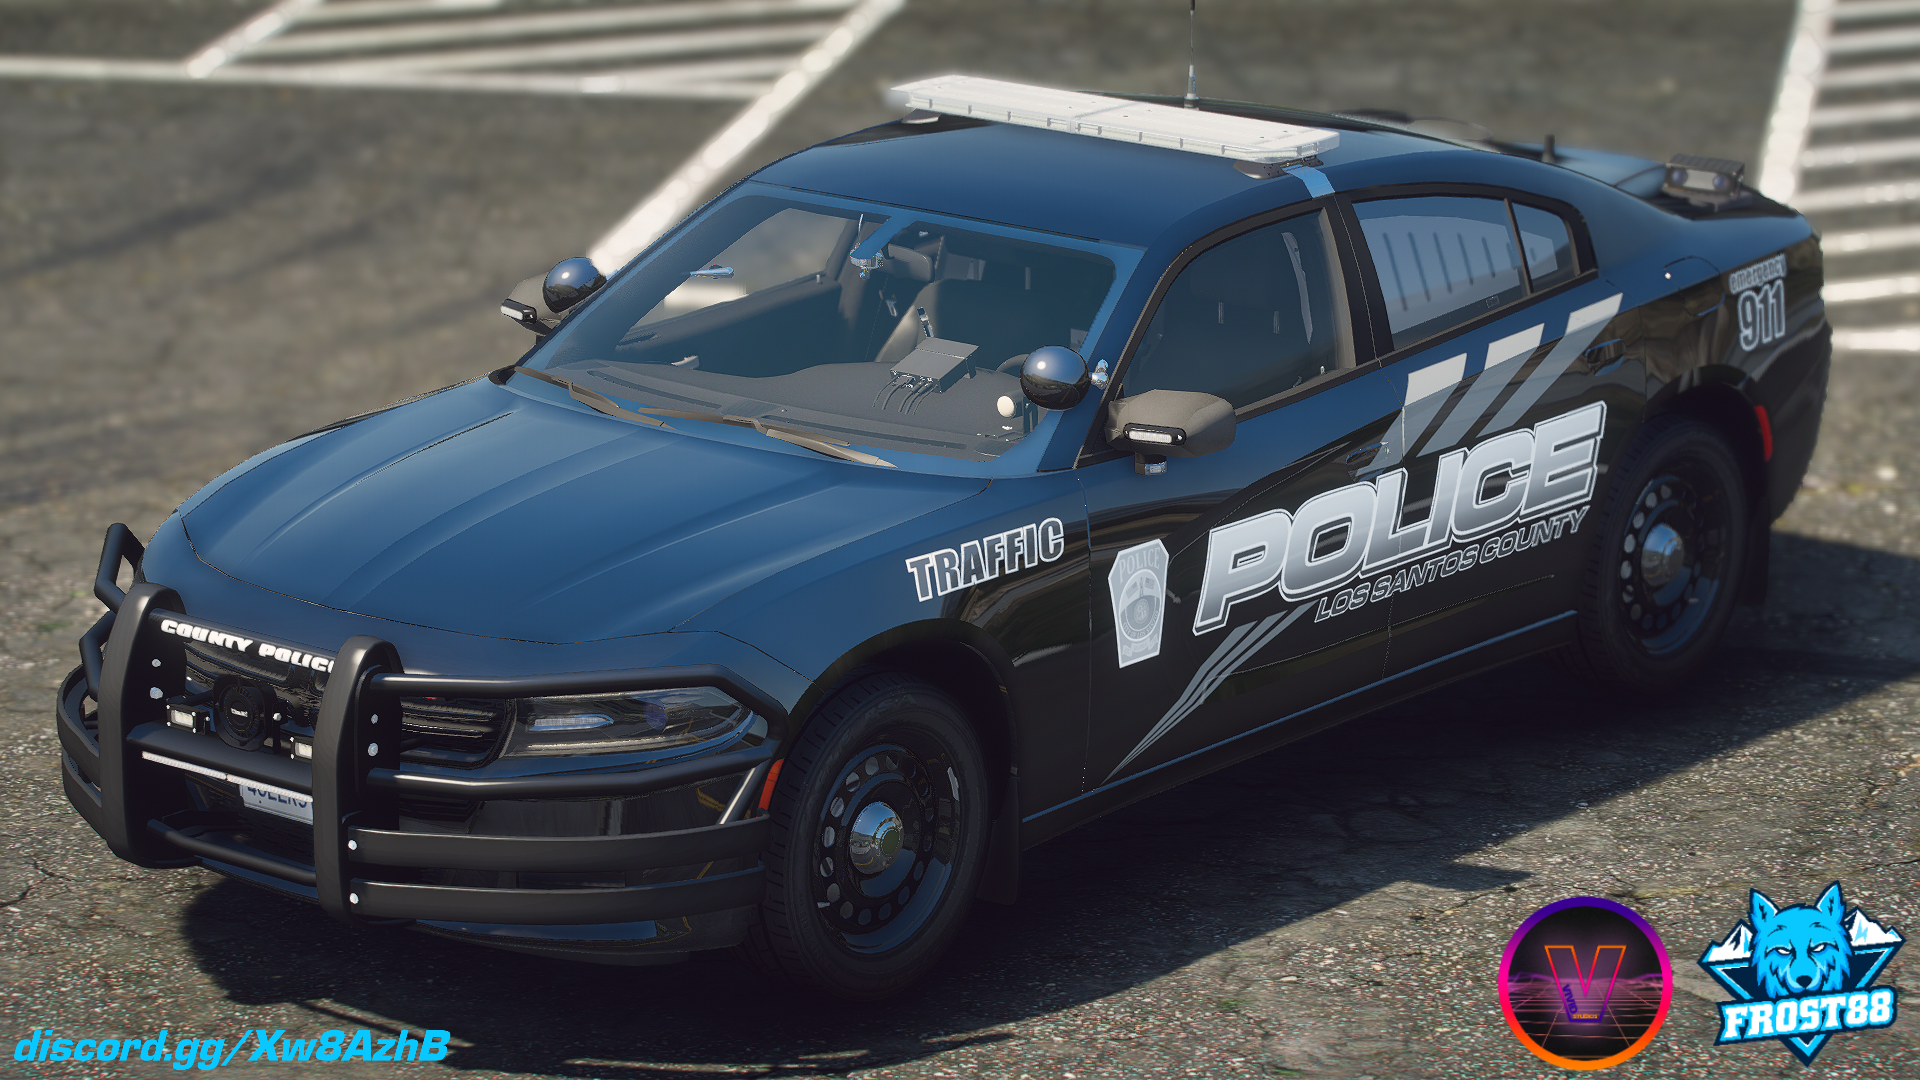 2019 Charger LSCPD